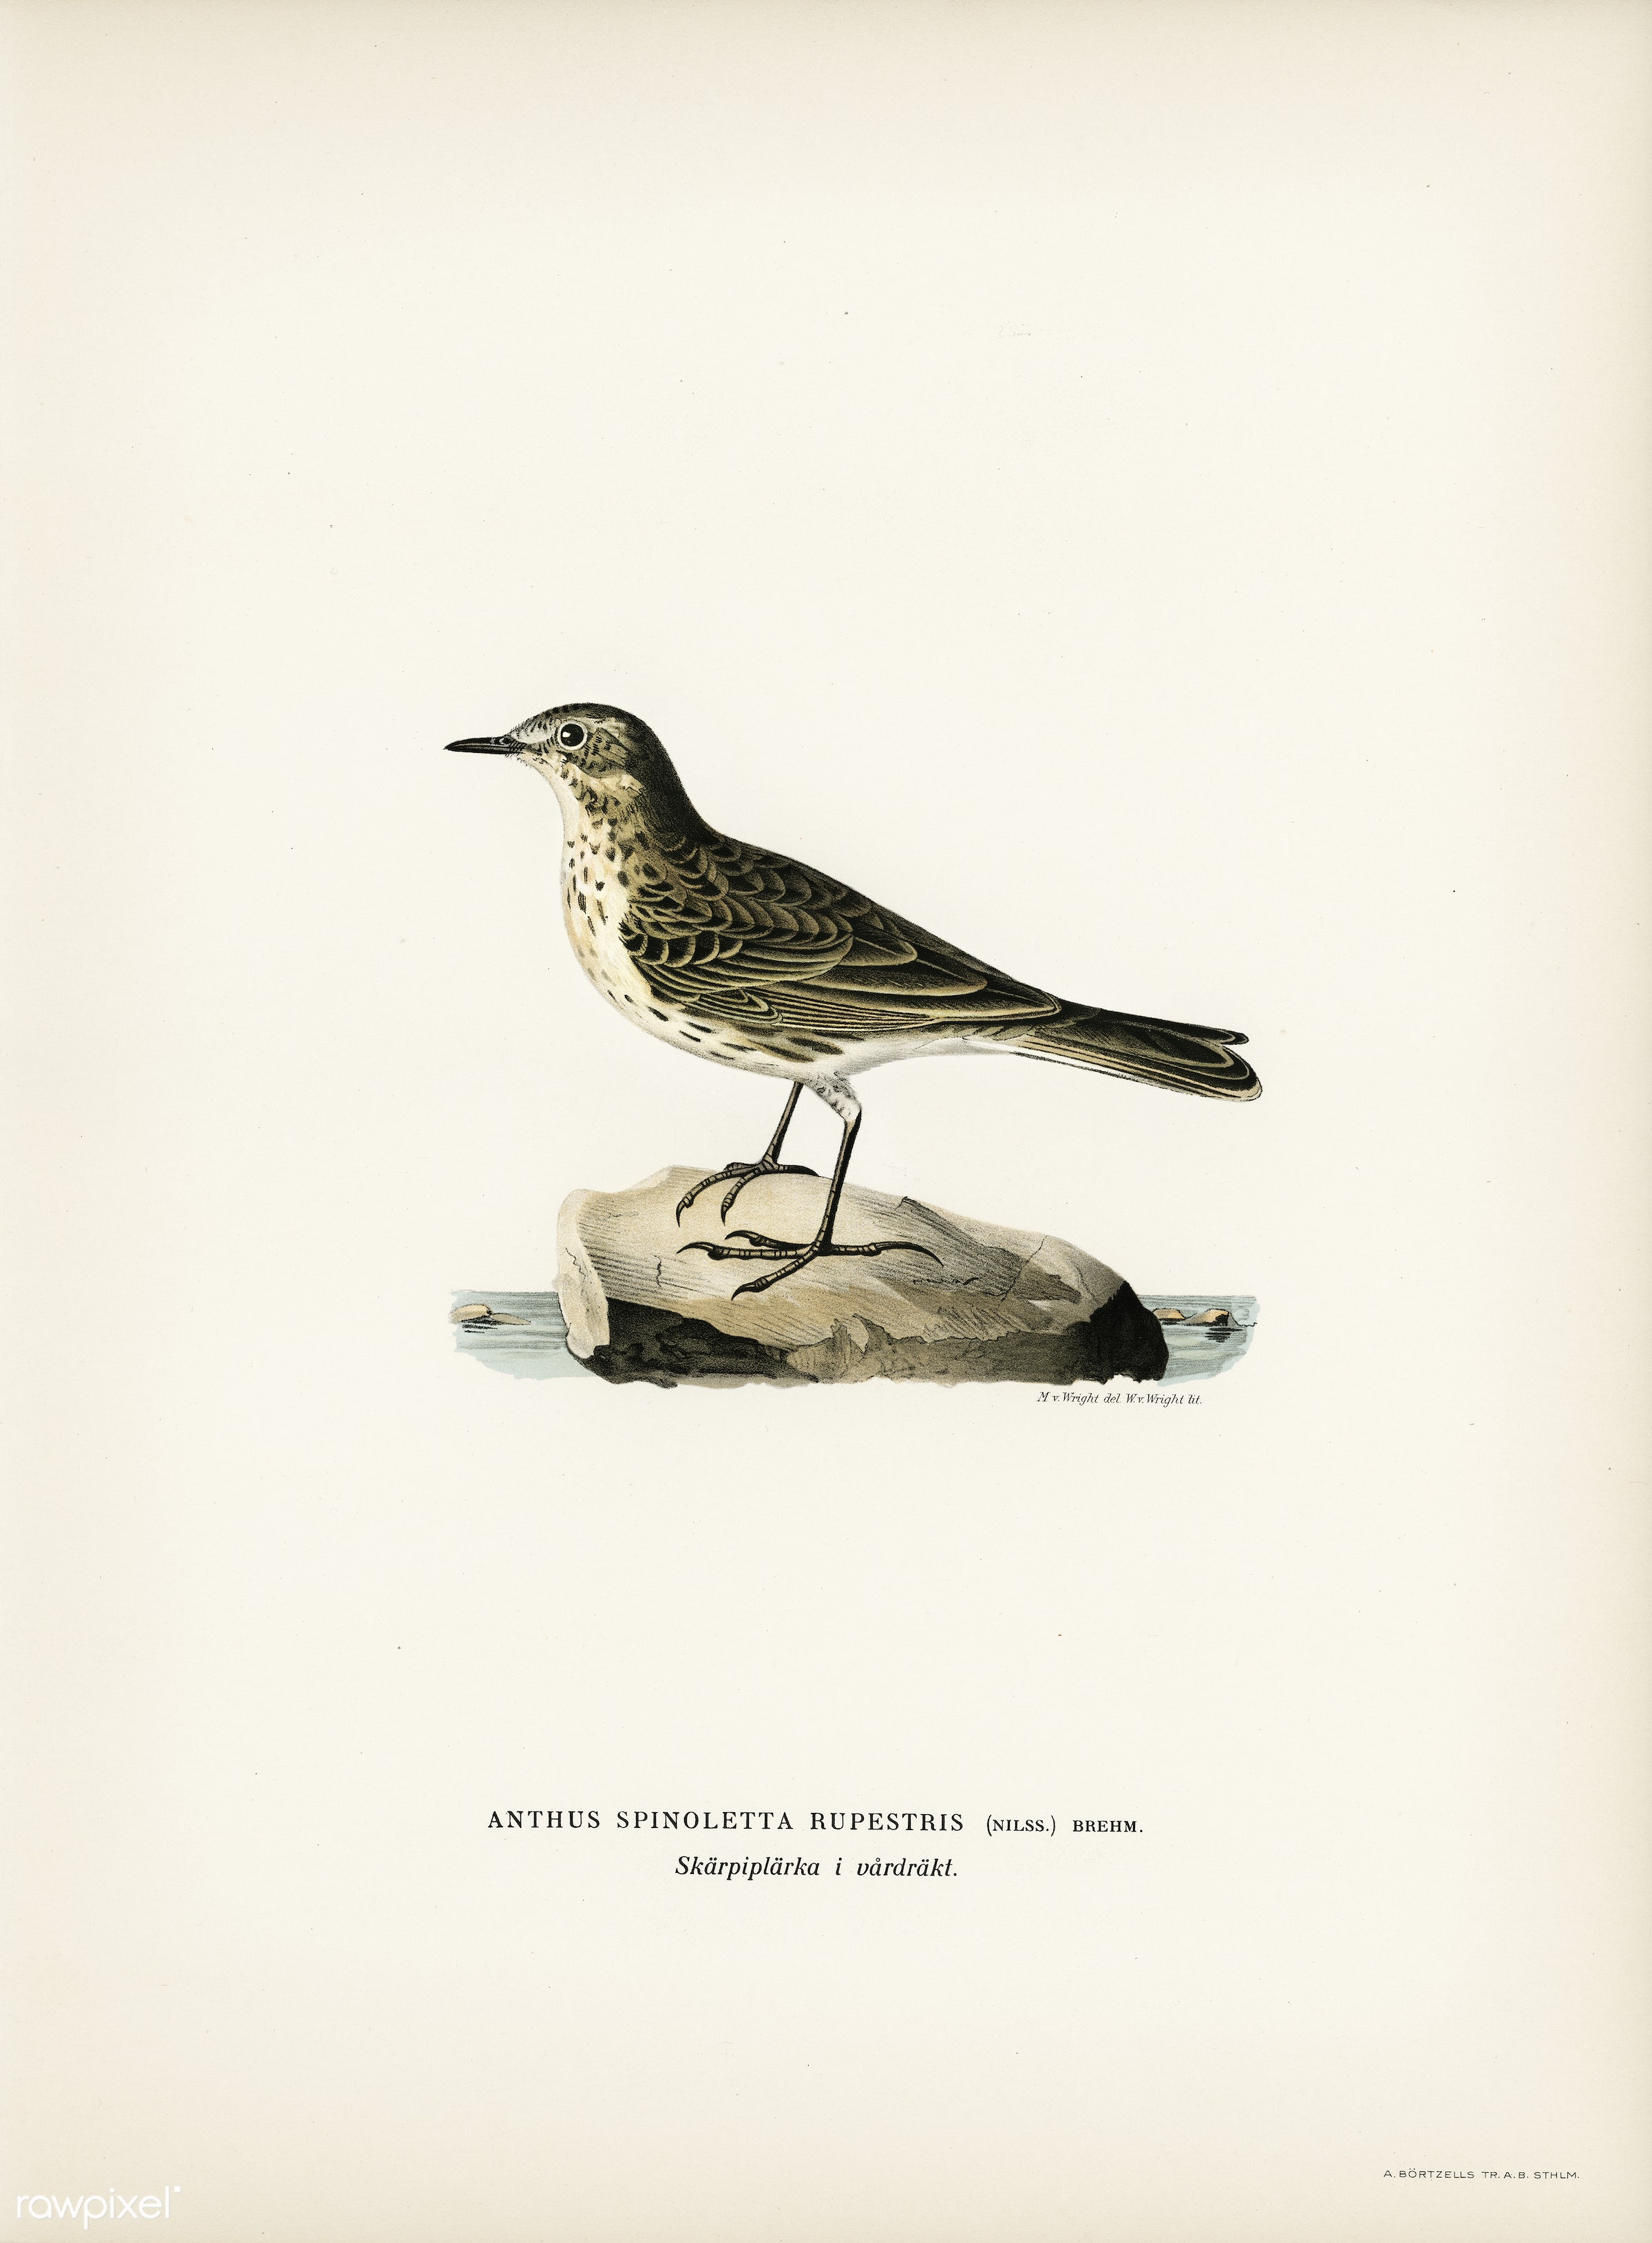 Water pipi (ANTHUS SPINOLETTA RUPESTRIS) illustrated by the von Wright brothers. Digitally enhanced from our own 1929 folio...